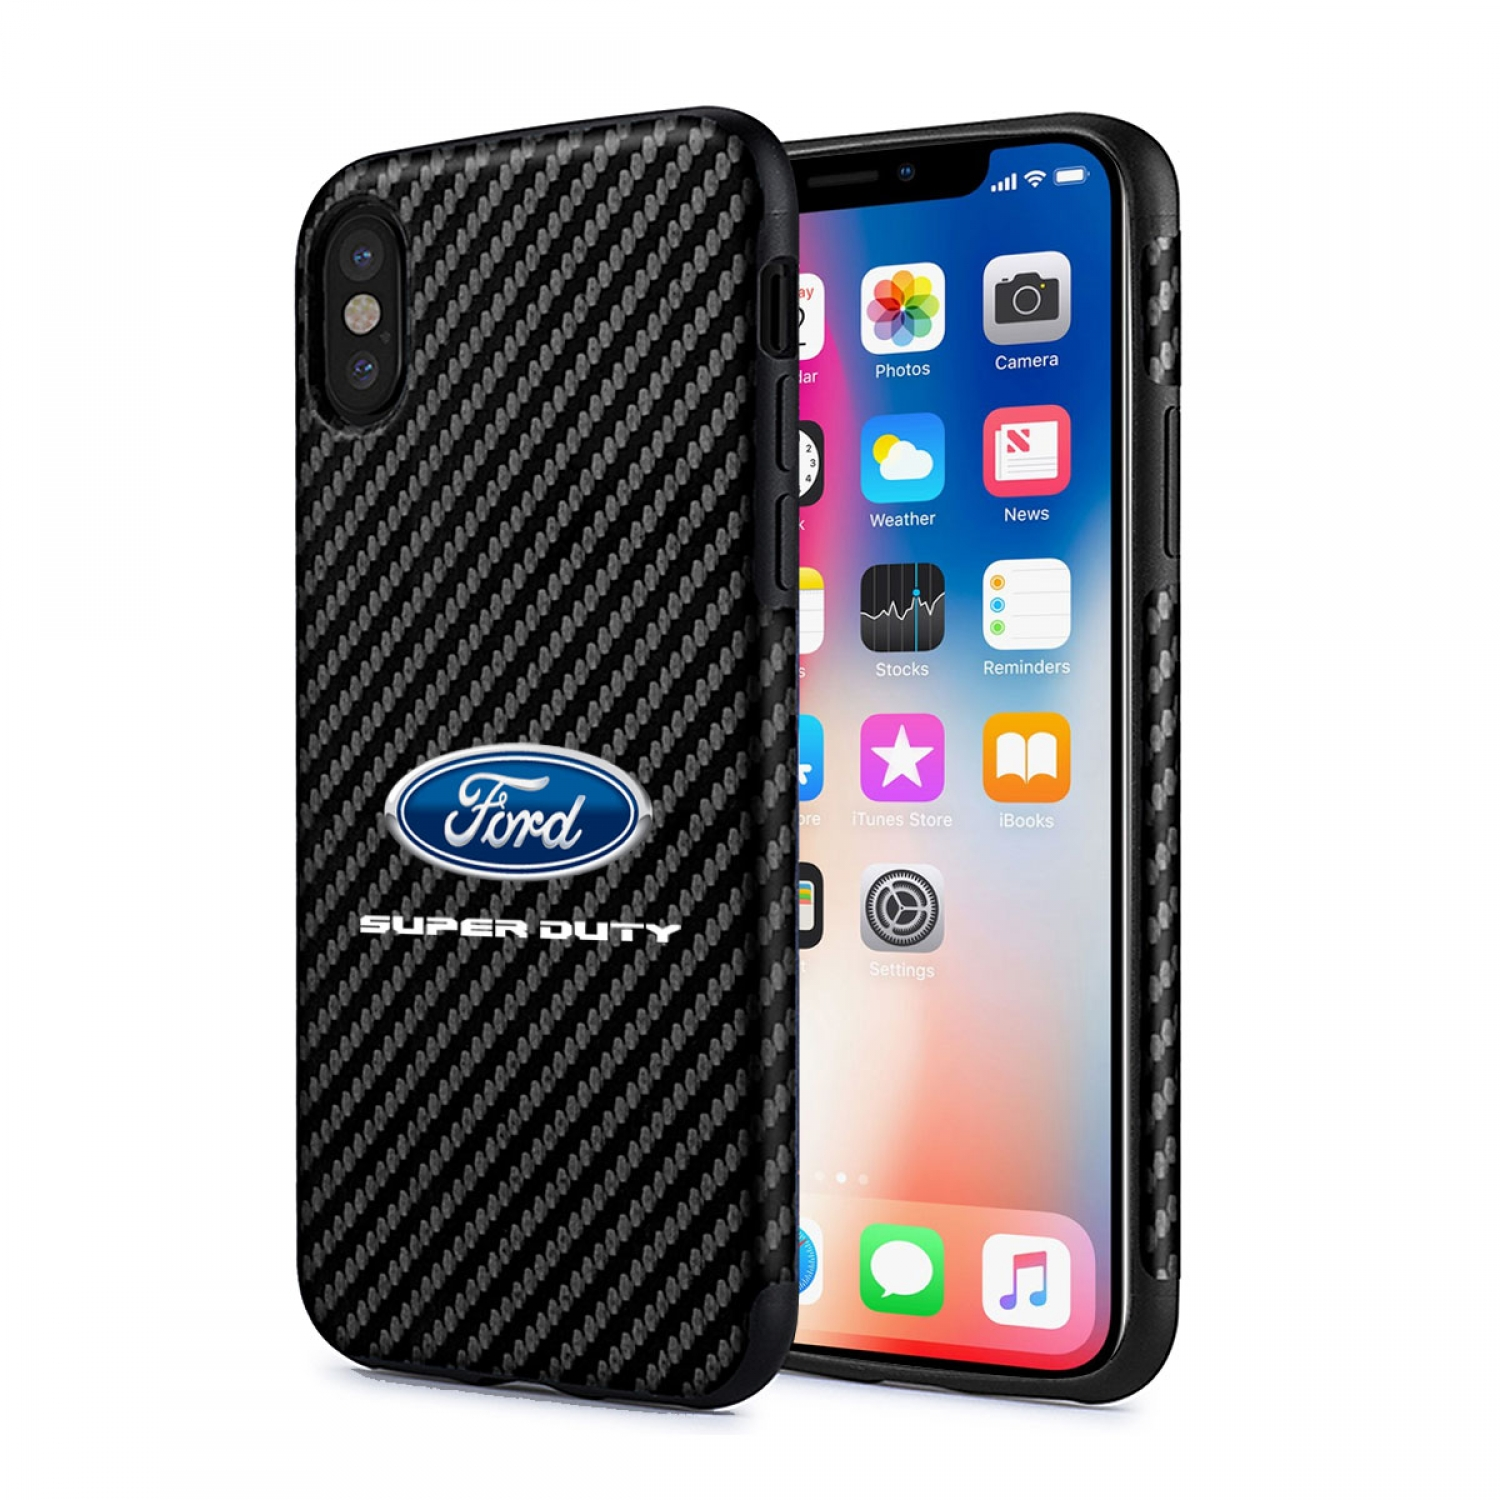 Ford Super Duty iPhone X Black Carbon Fiber Texture Leather TPU Shockproof Cell Phone Case